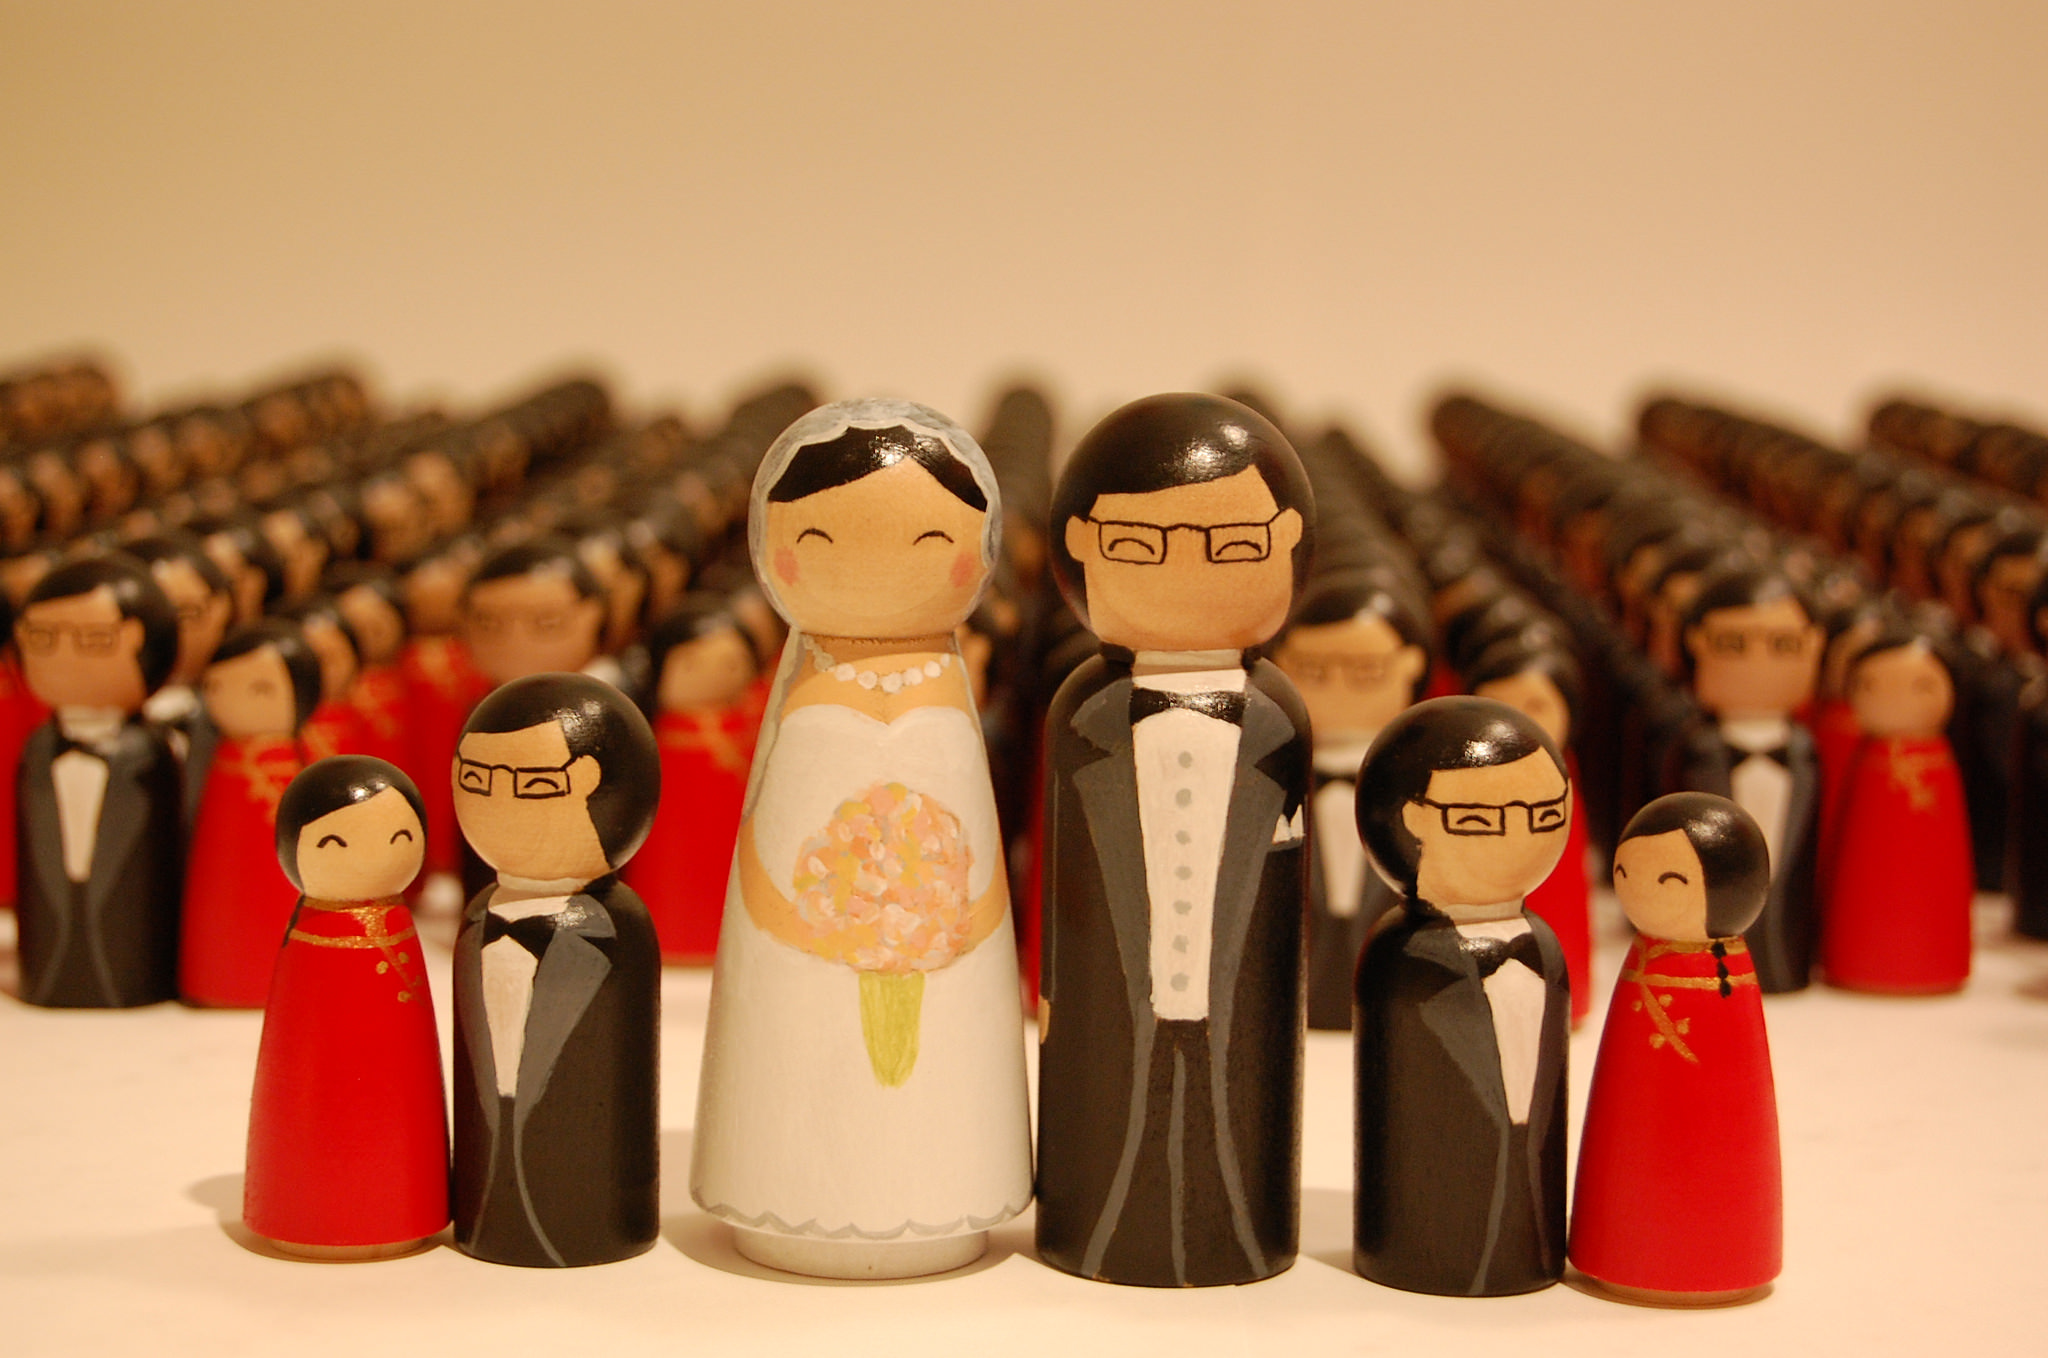 272 hand-painted wooden wedding dolls for a private client